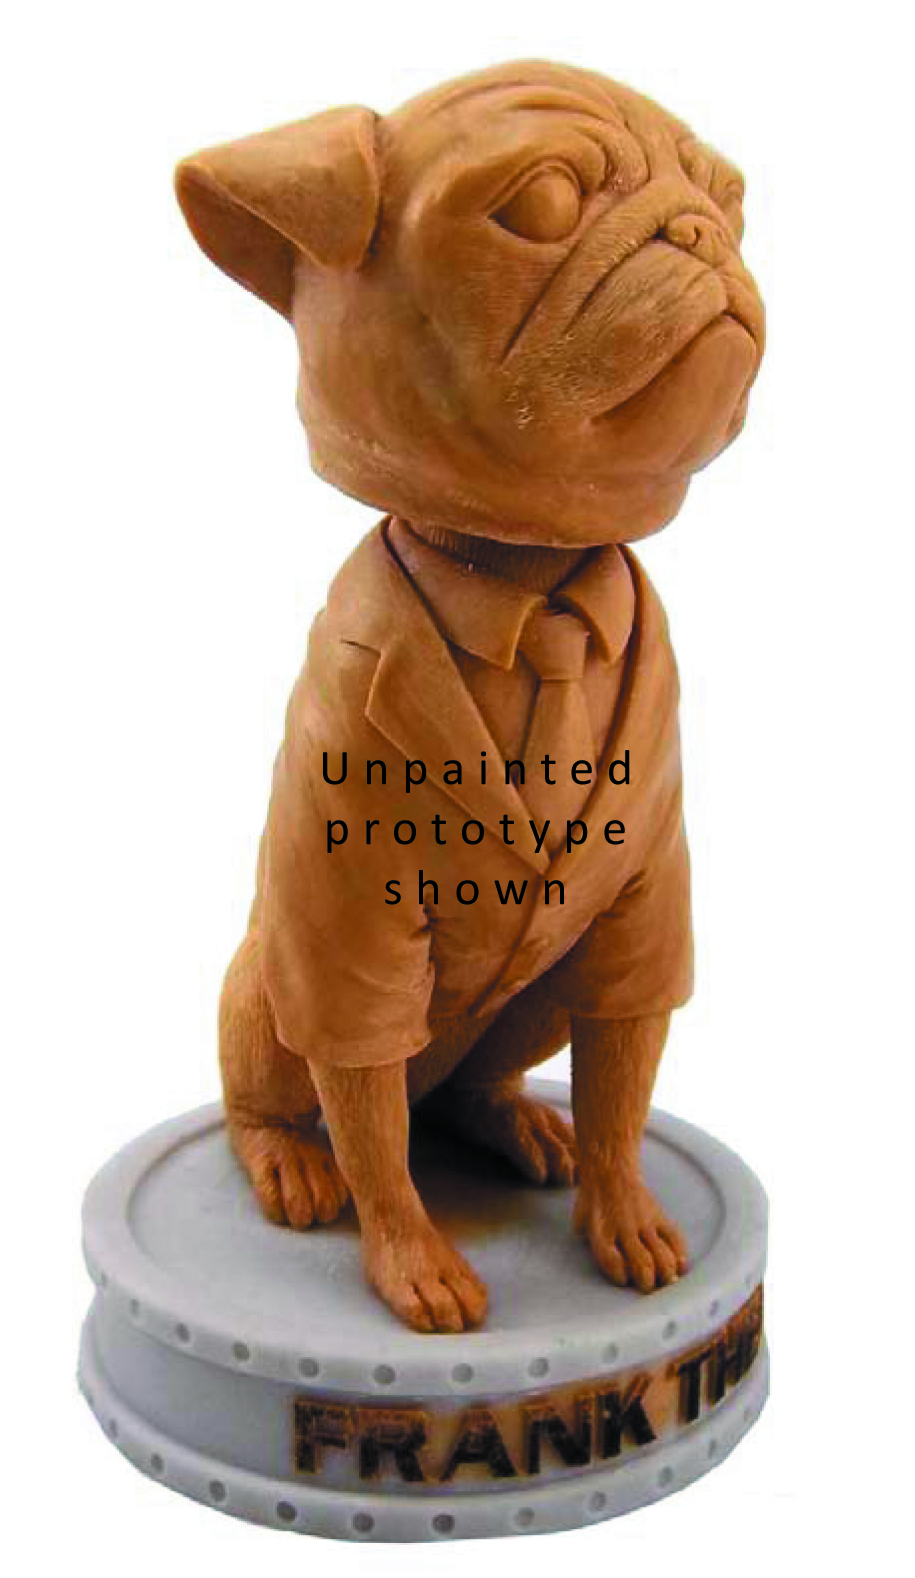 MIB FRANK THE PUG SHAKEMS BOBBLE STATUE